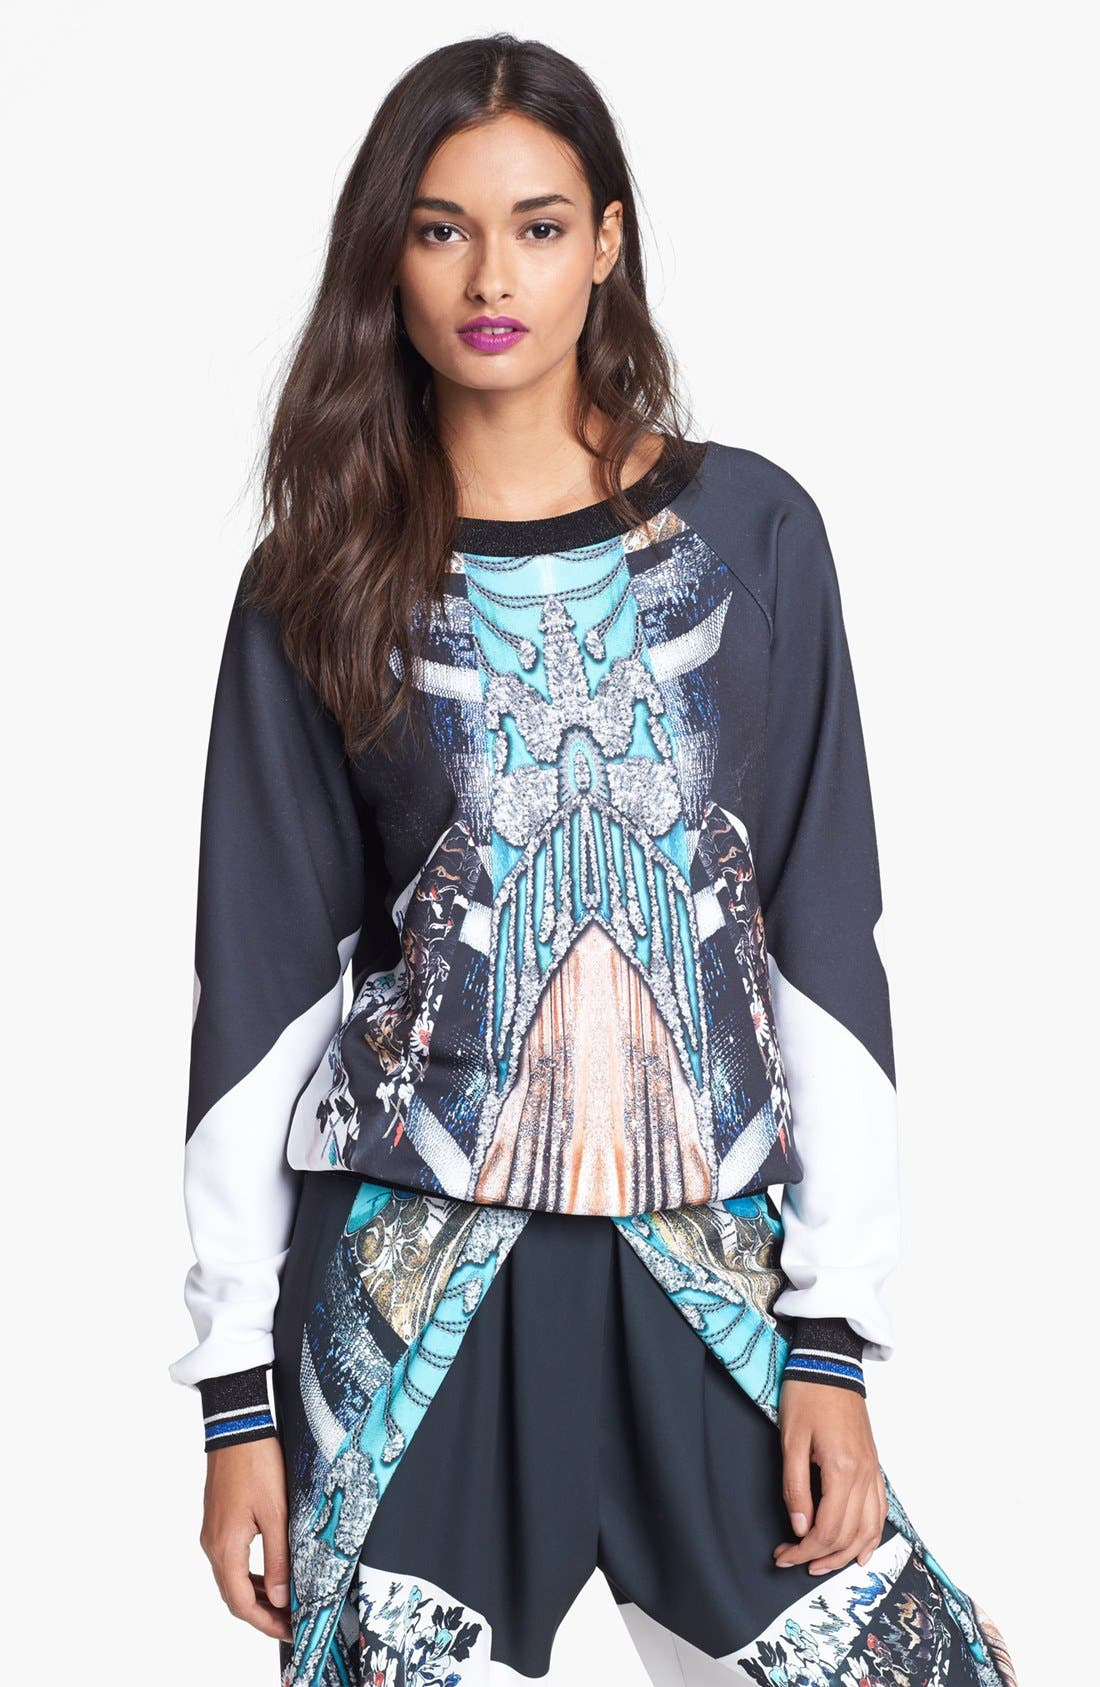 Alternate Image 1 Selected - Clover Canyon 'All That Jazz' Print Sweatshirt